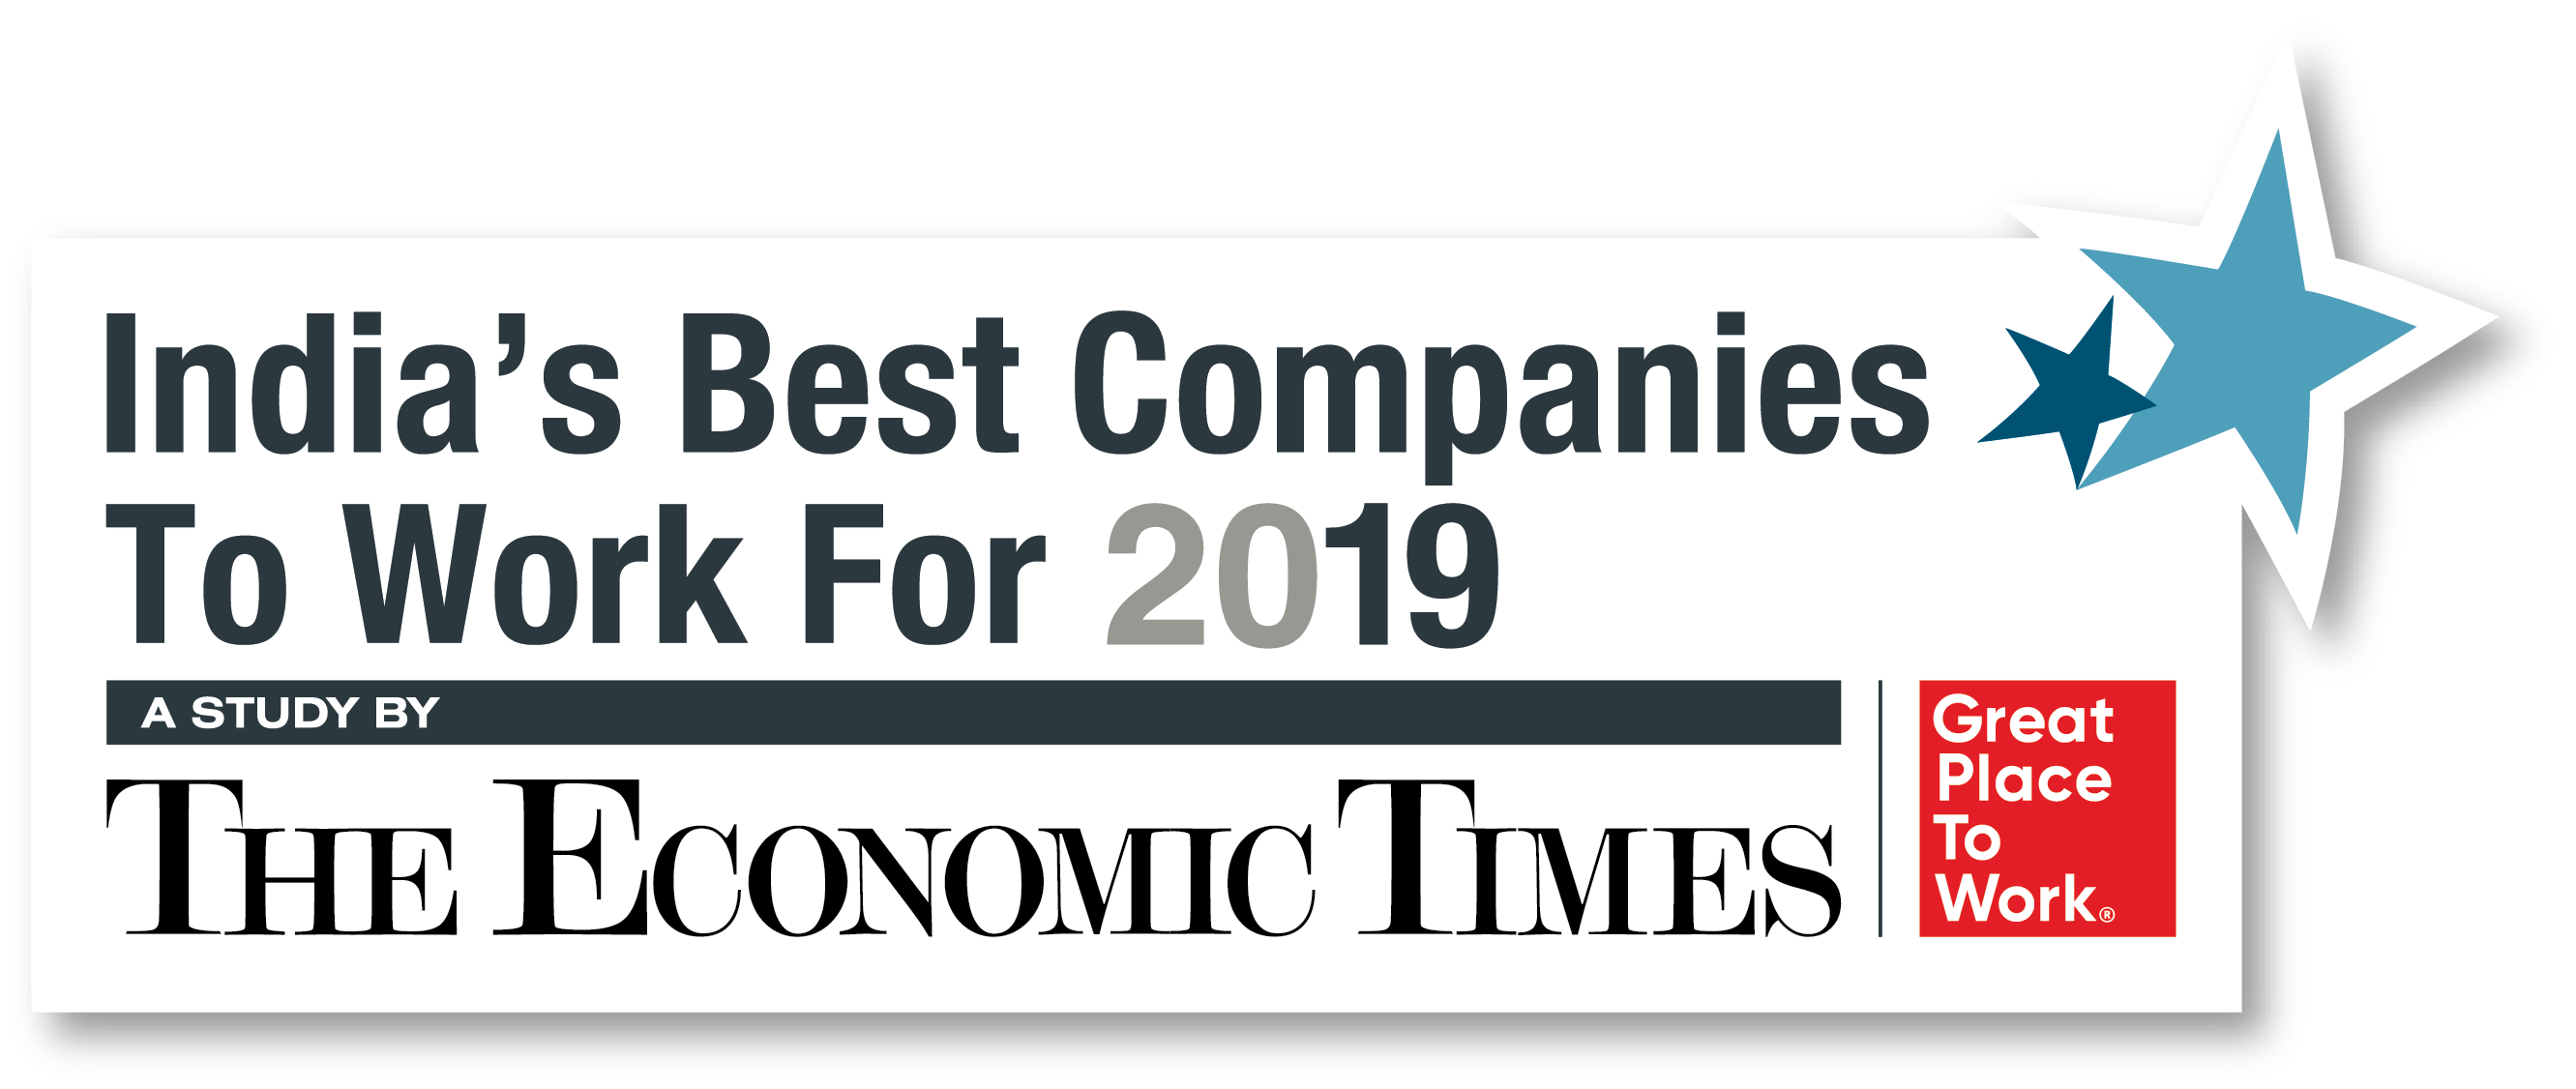 TO THE NEW Recognized Among India's Top 100 Best Companies To Work For, 2019